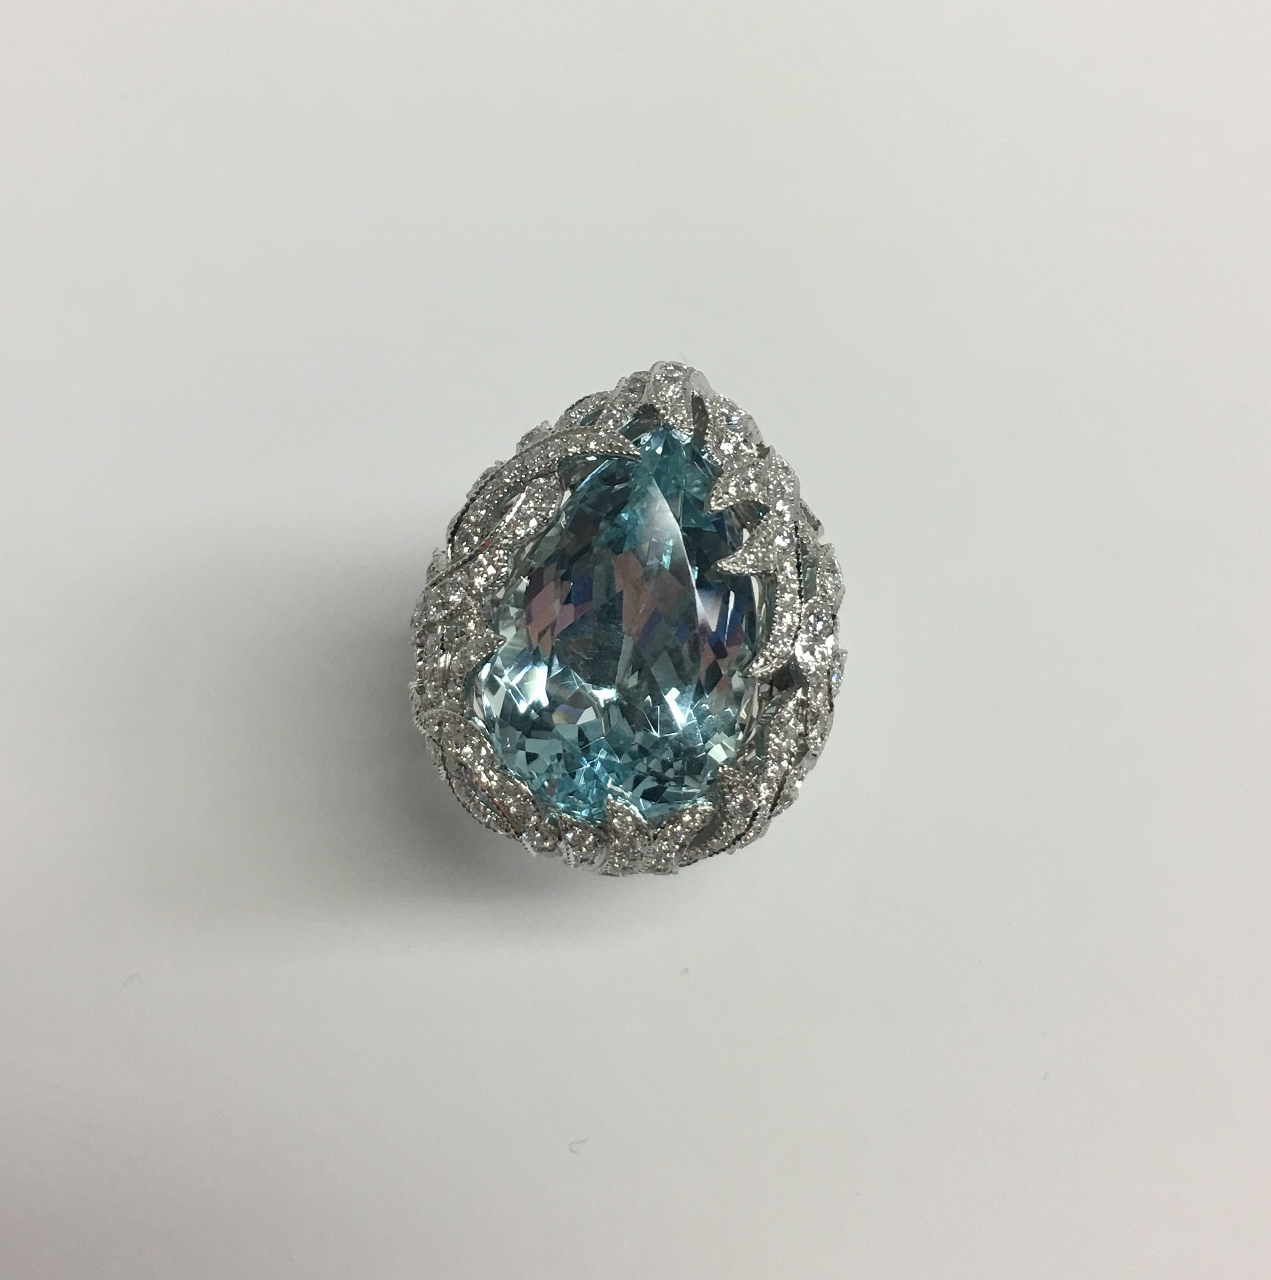 19 Carats Aquamarine Diamond Ring